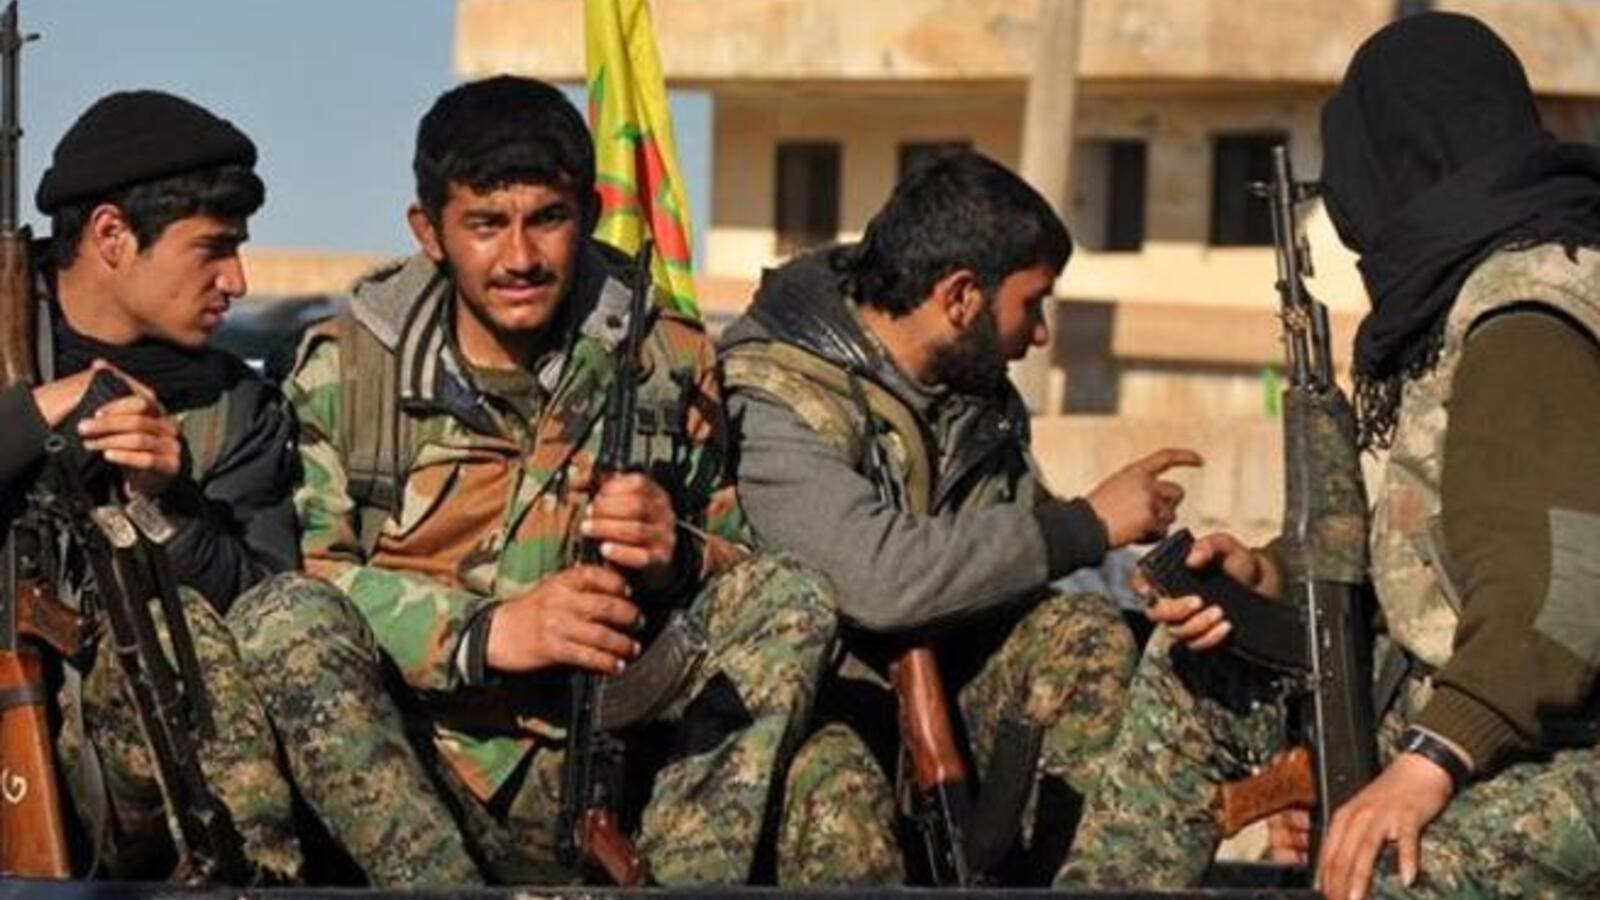 Kurdish YPG fighters in Syria. (AFP/File)